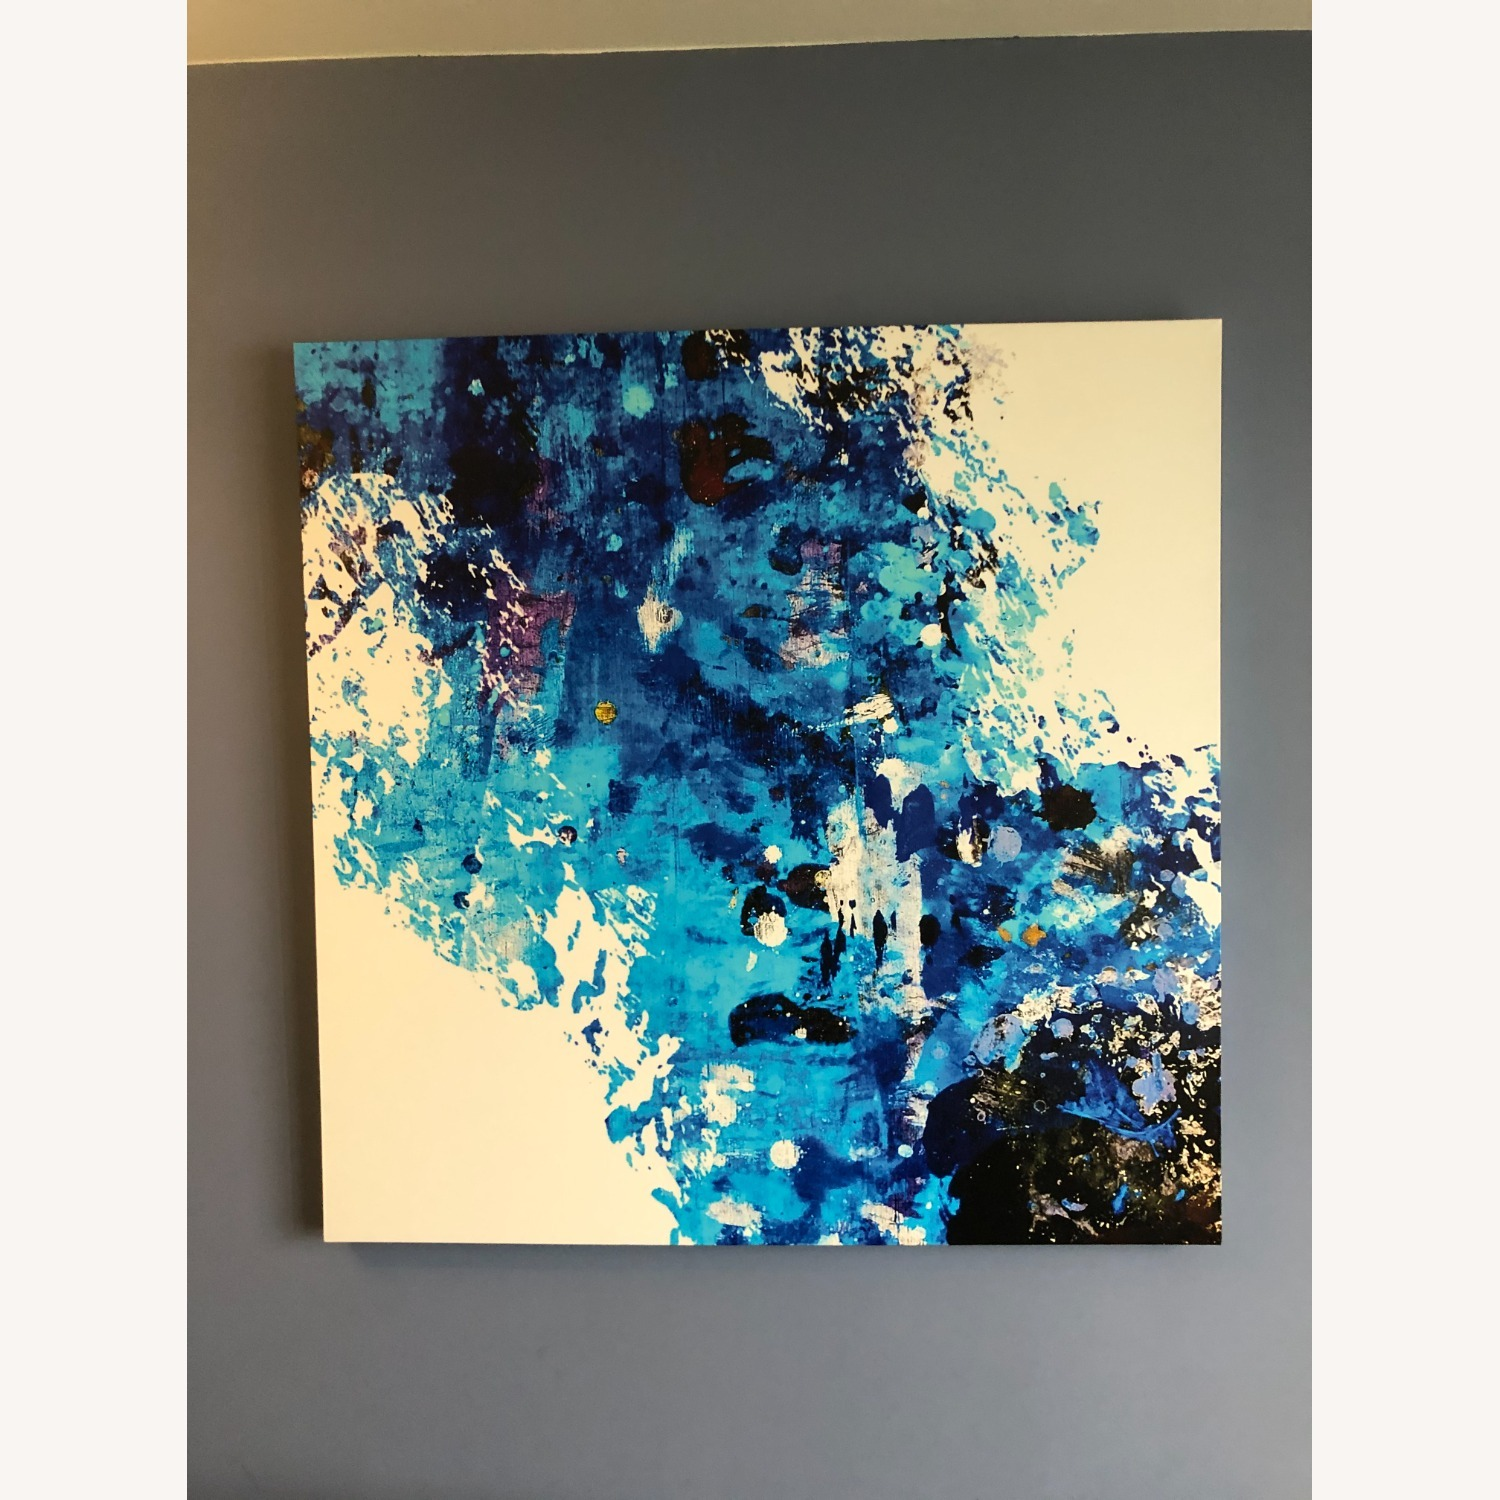 Candid Cold Oversized Gallery Wrapped Canvas - image-1